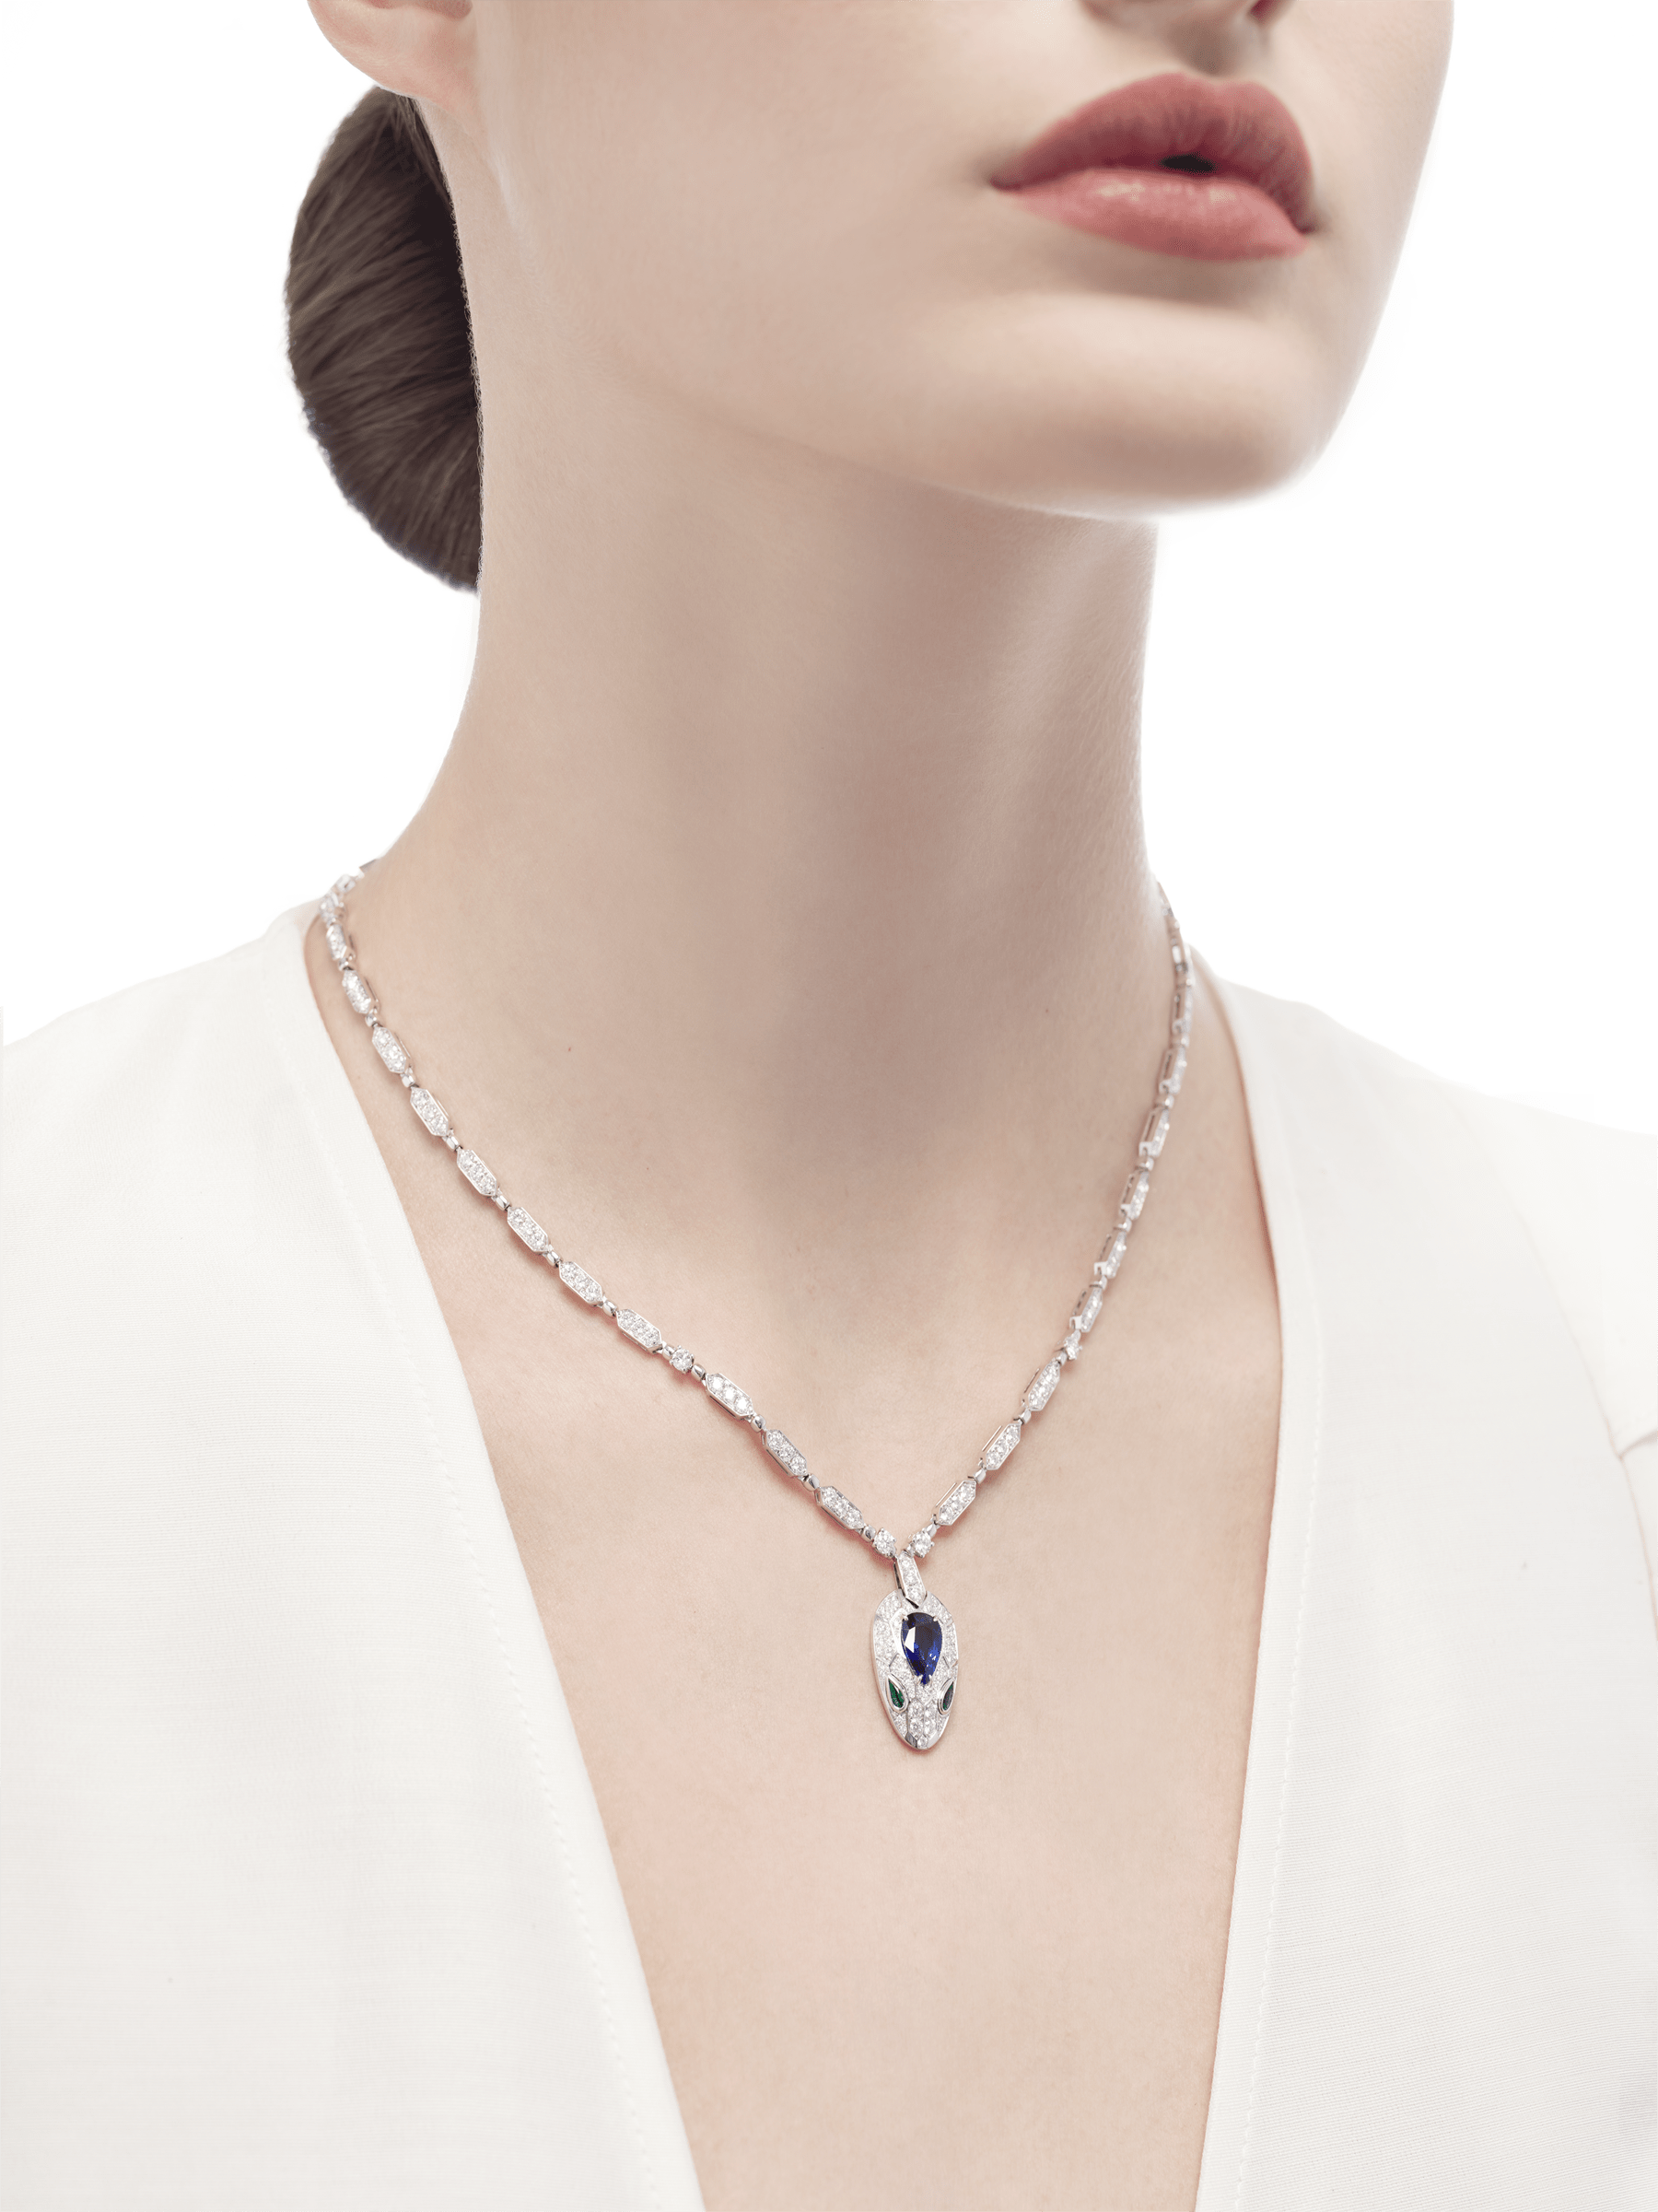 Serpenti 18 kt white gold necklace set with a blue sapphire on the head, emerald eyes and pavé diamonds 355354 image 2